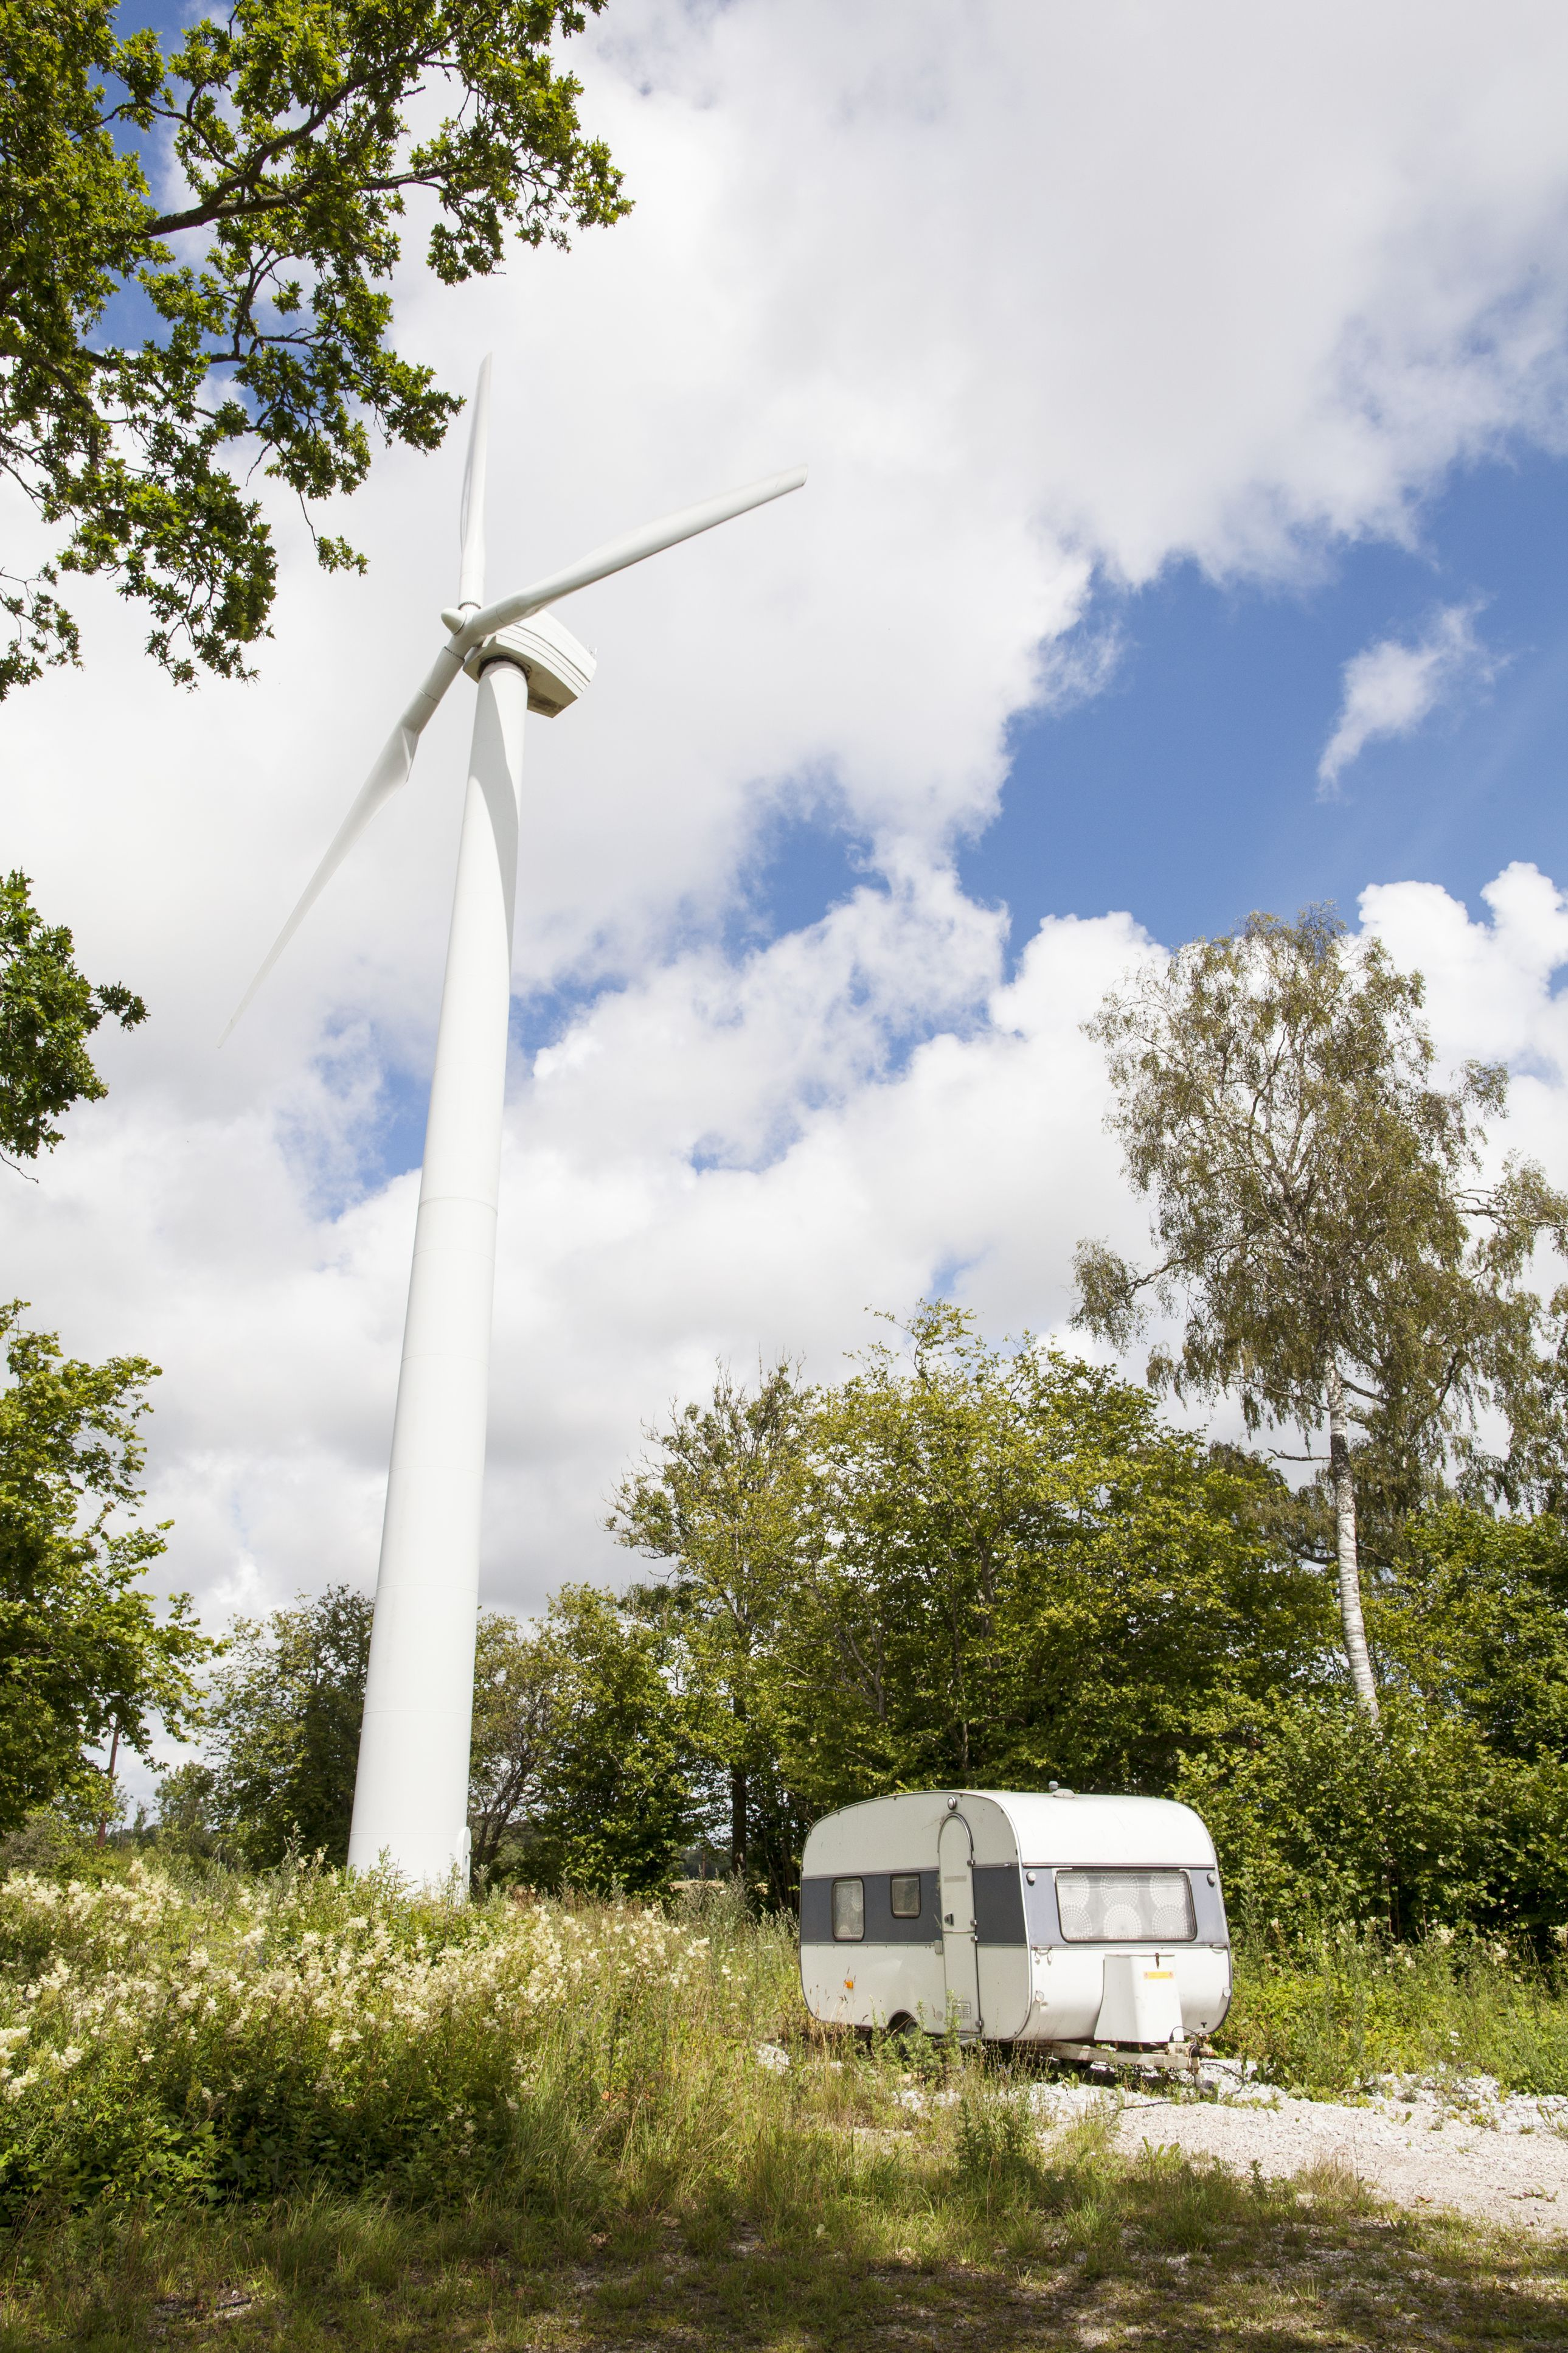 RVers Go Green With Wind Power